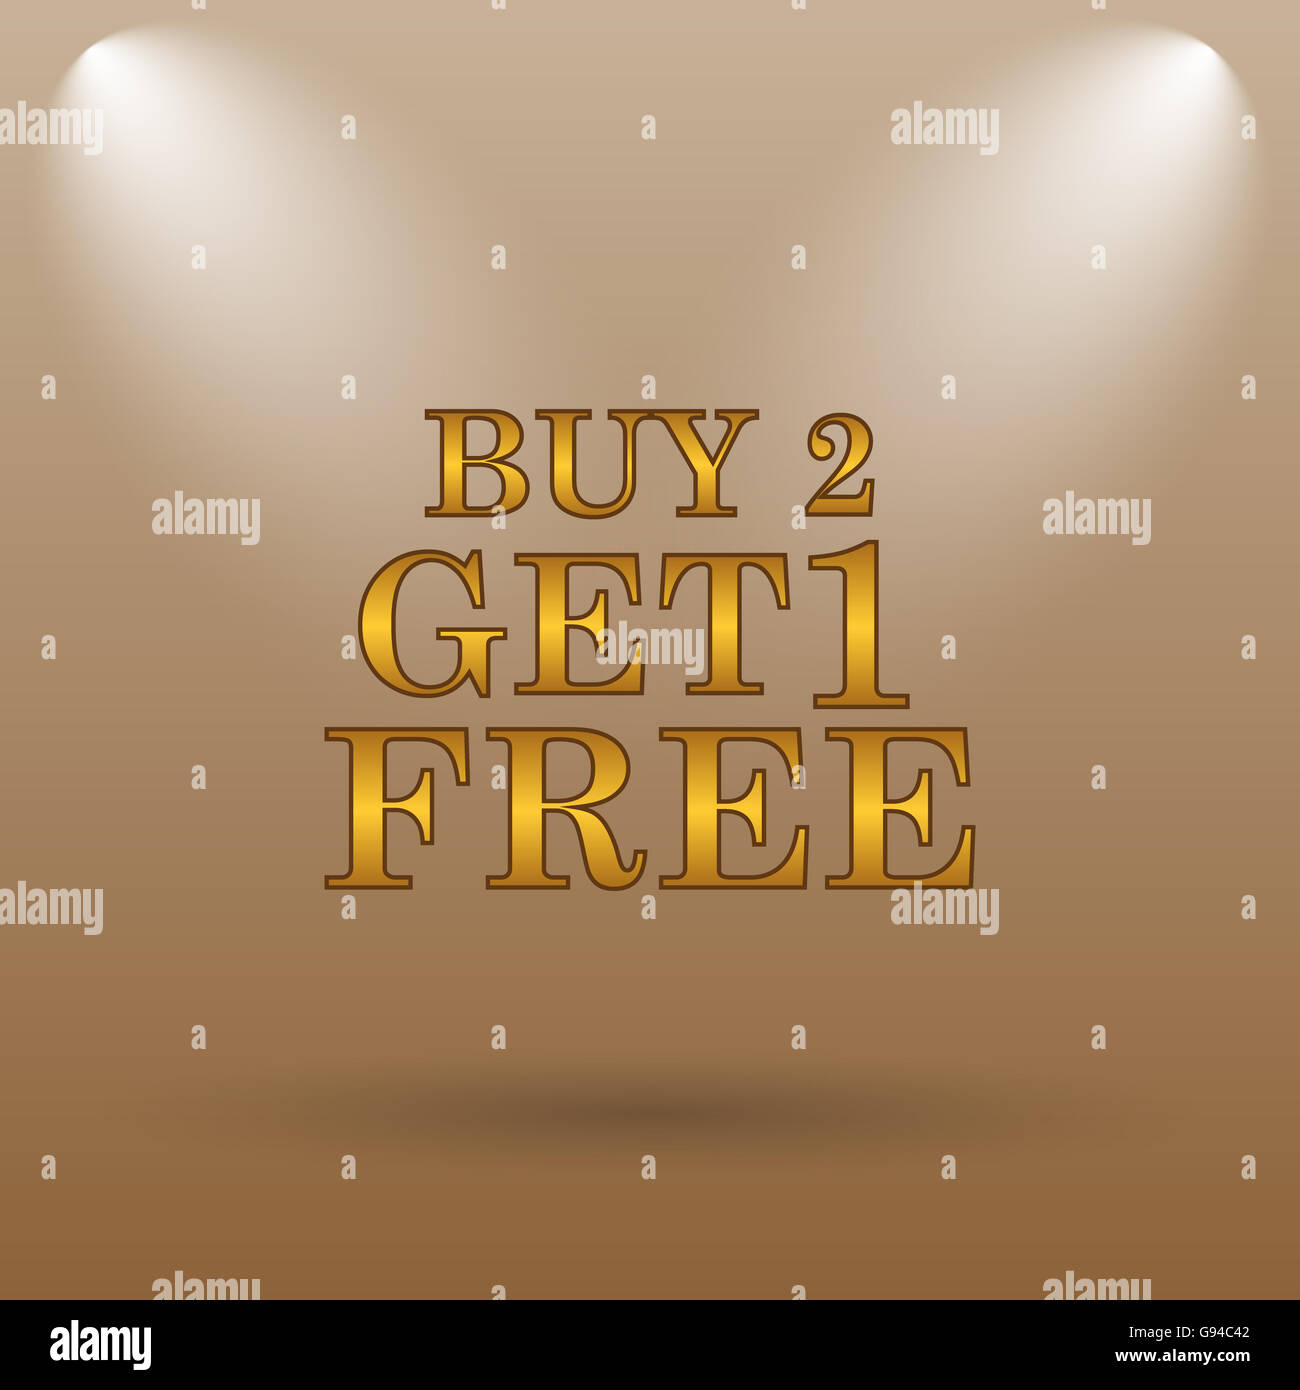 Buy 2 get 1 free offer icon  Internet button on brown background